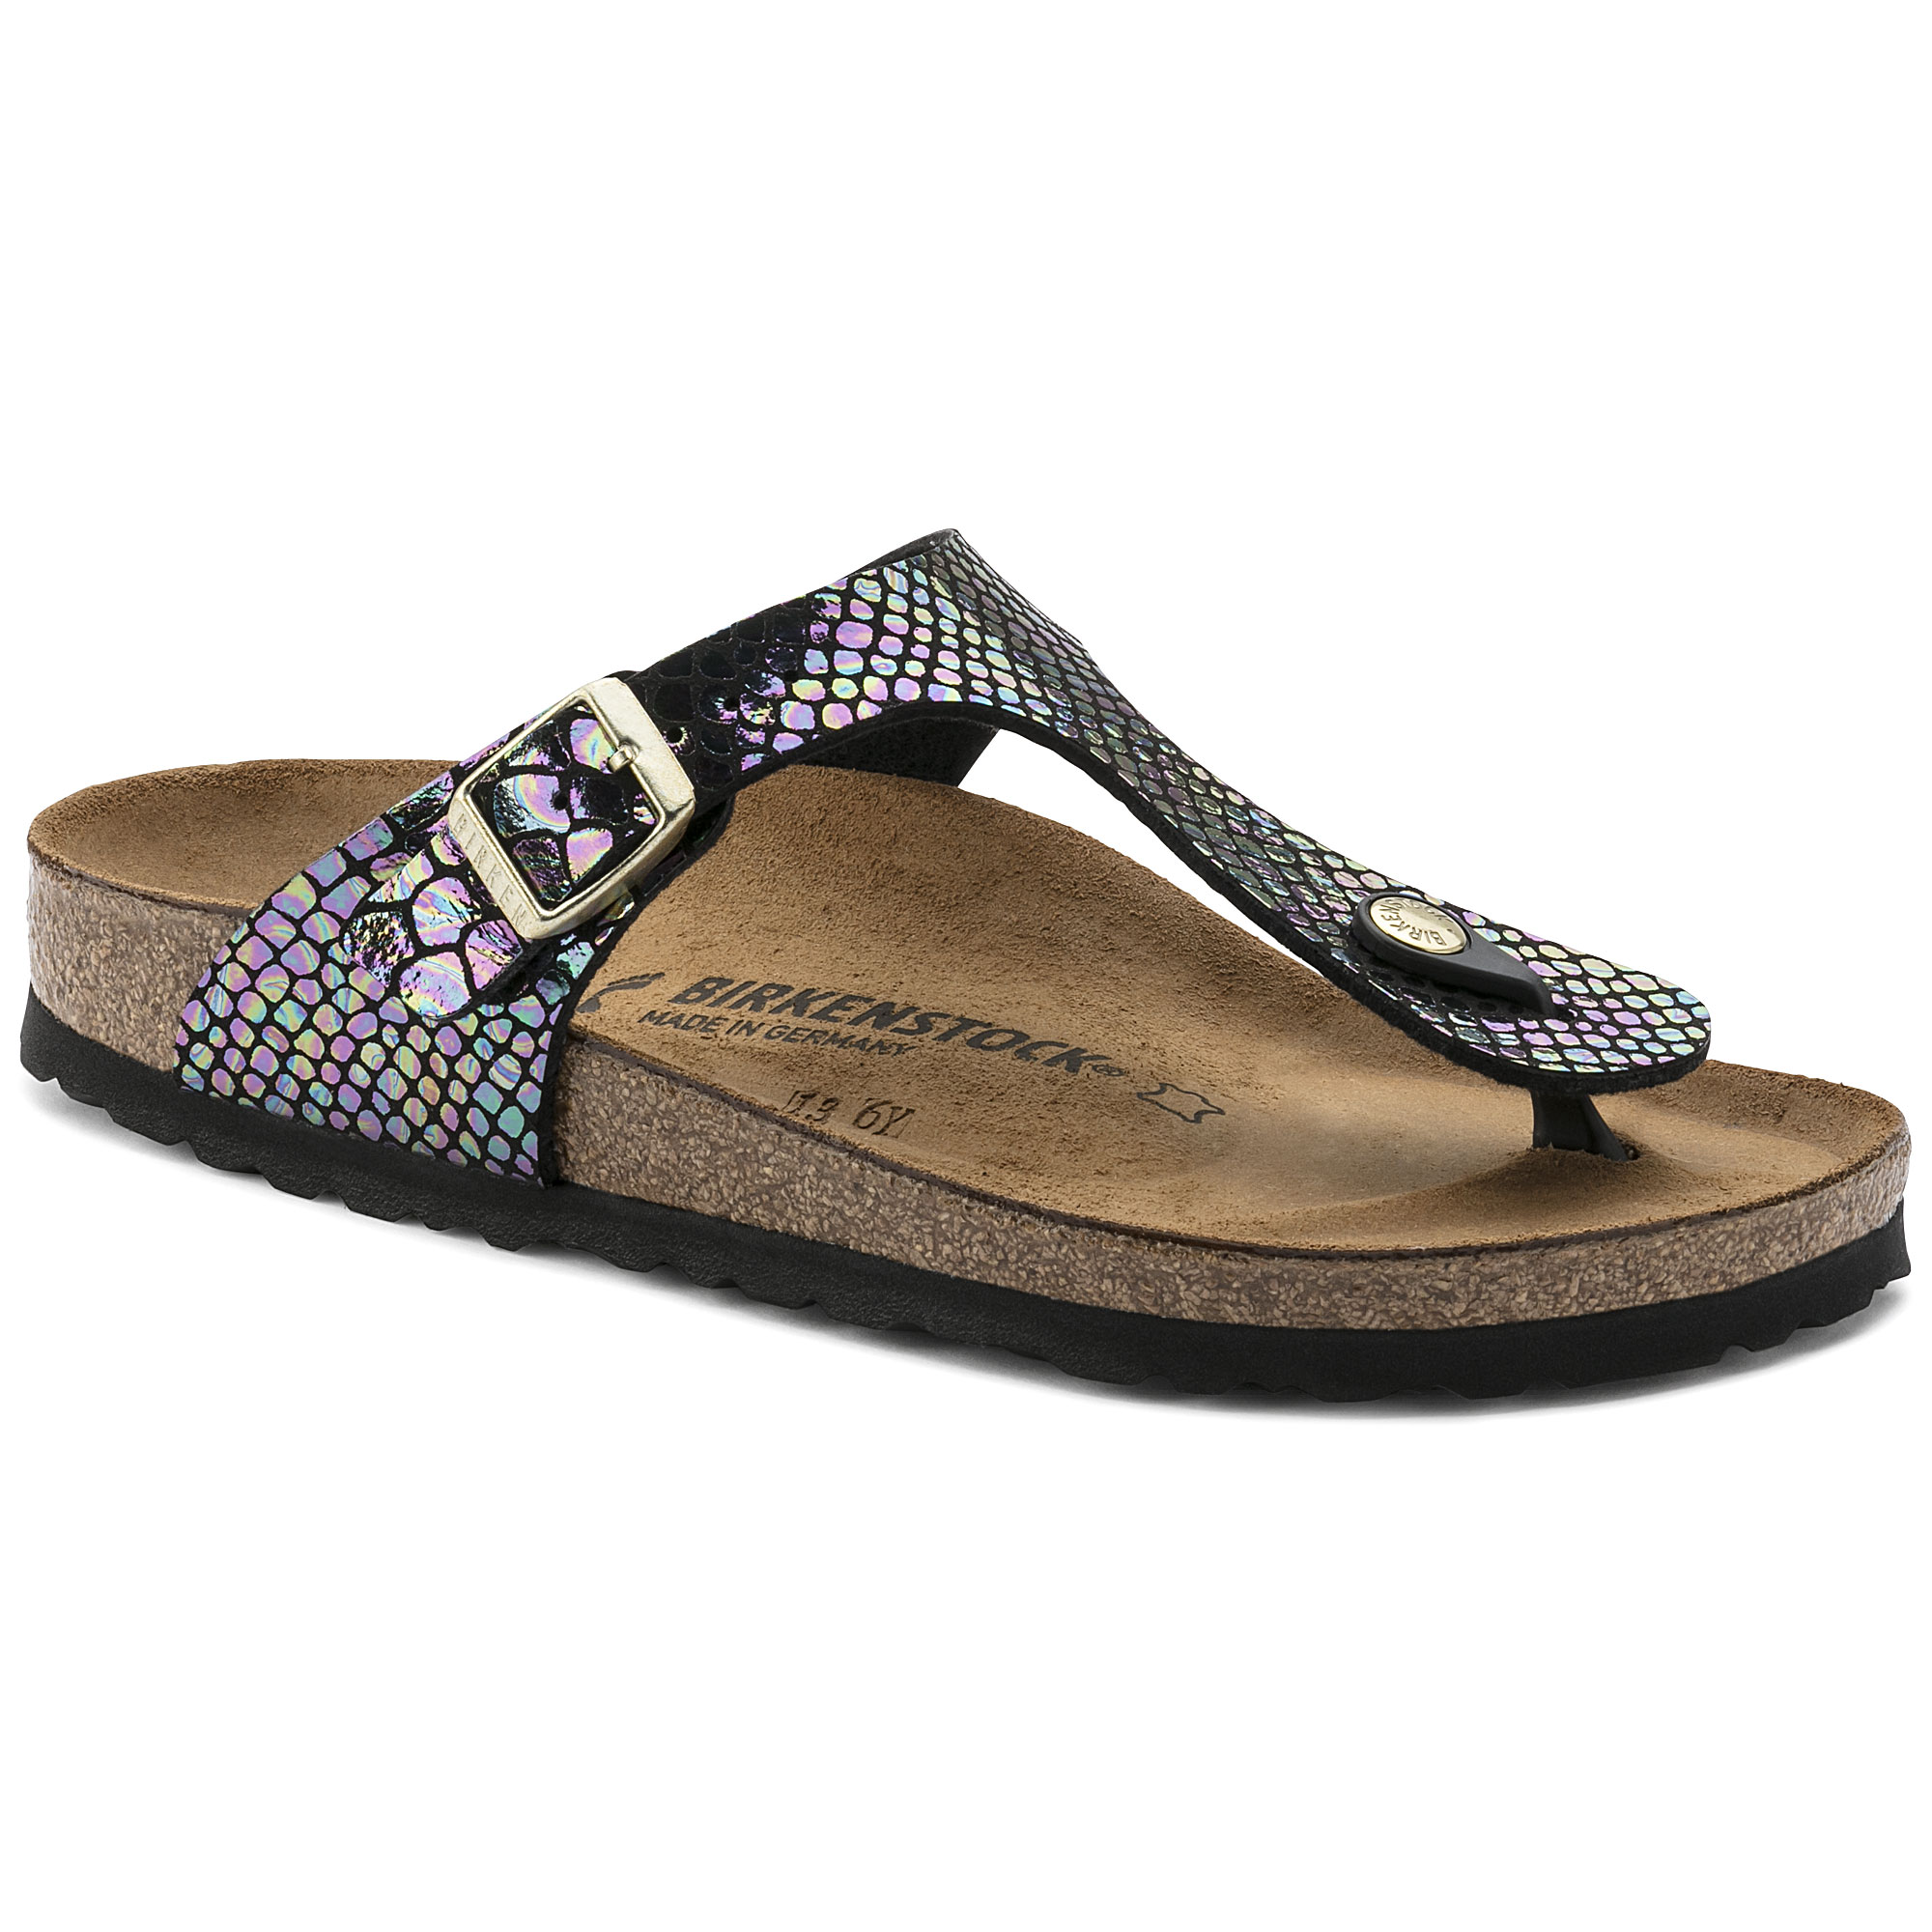 43ca69fdc6be Gizeh Birko-Flor Shiny Snake Black Multicolor